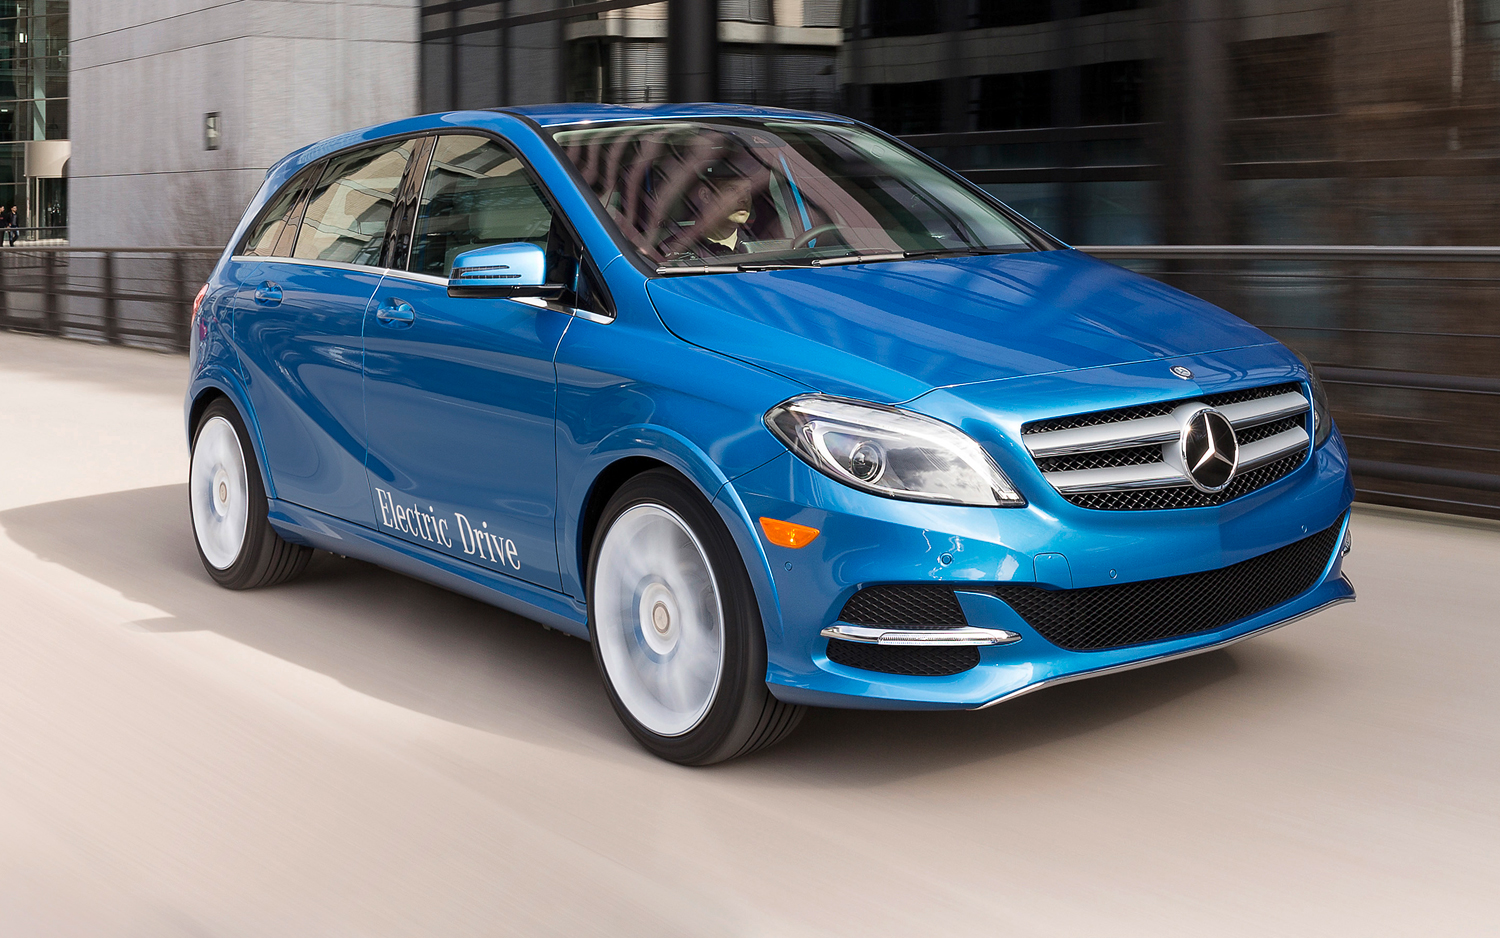 2014 mercedes benz b class electric drive image 10 for 2014 mercedes benz b class electric drive